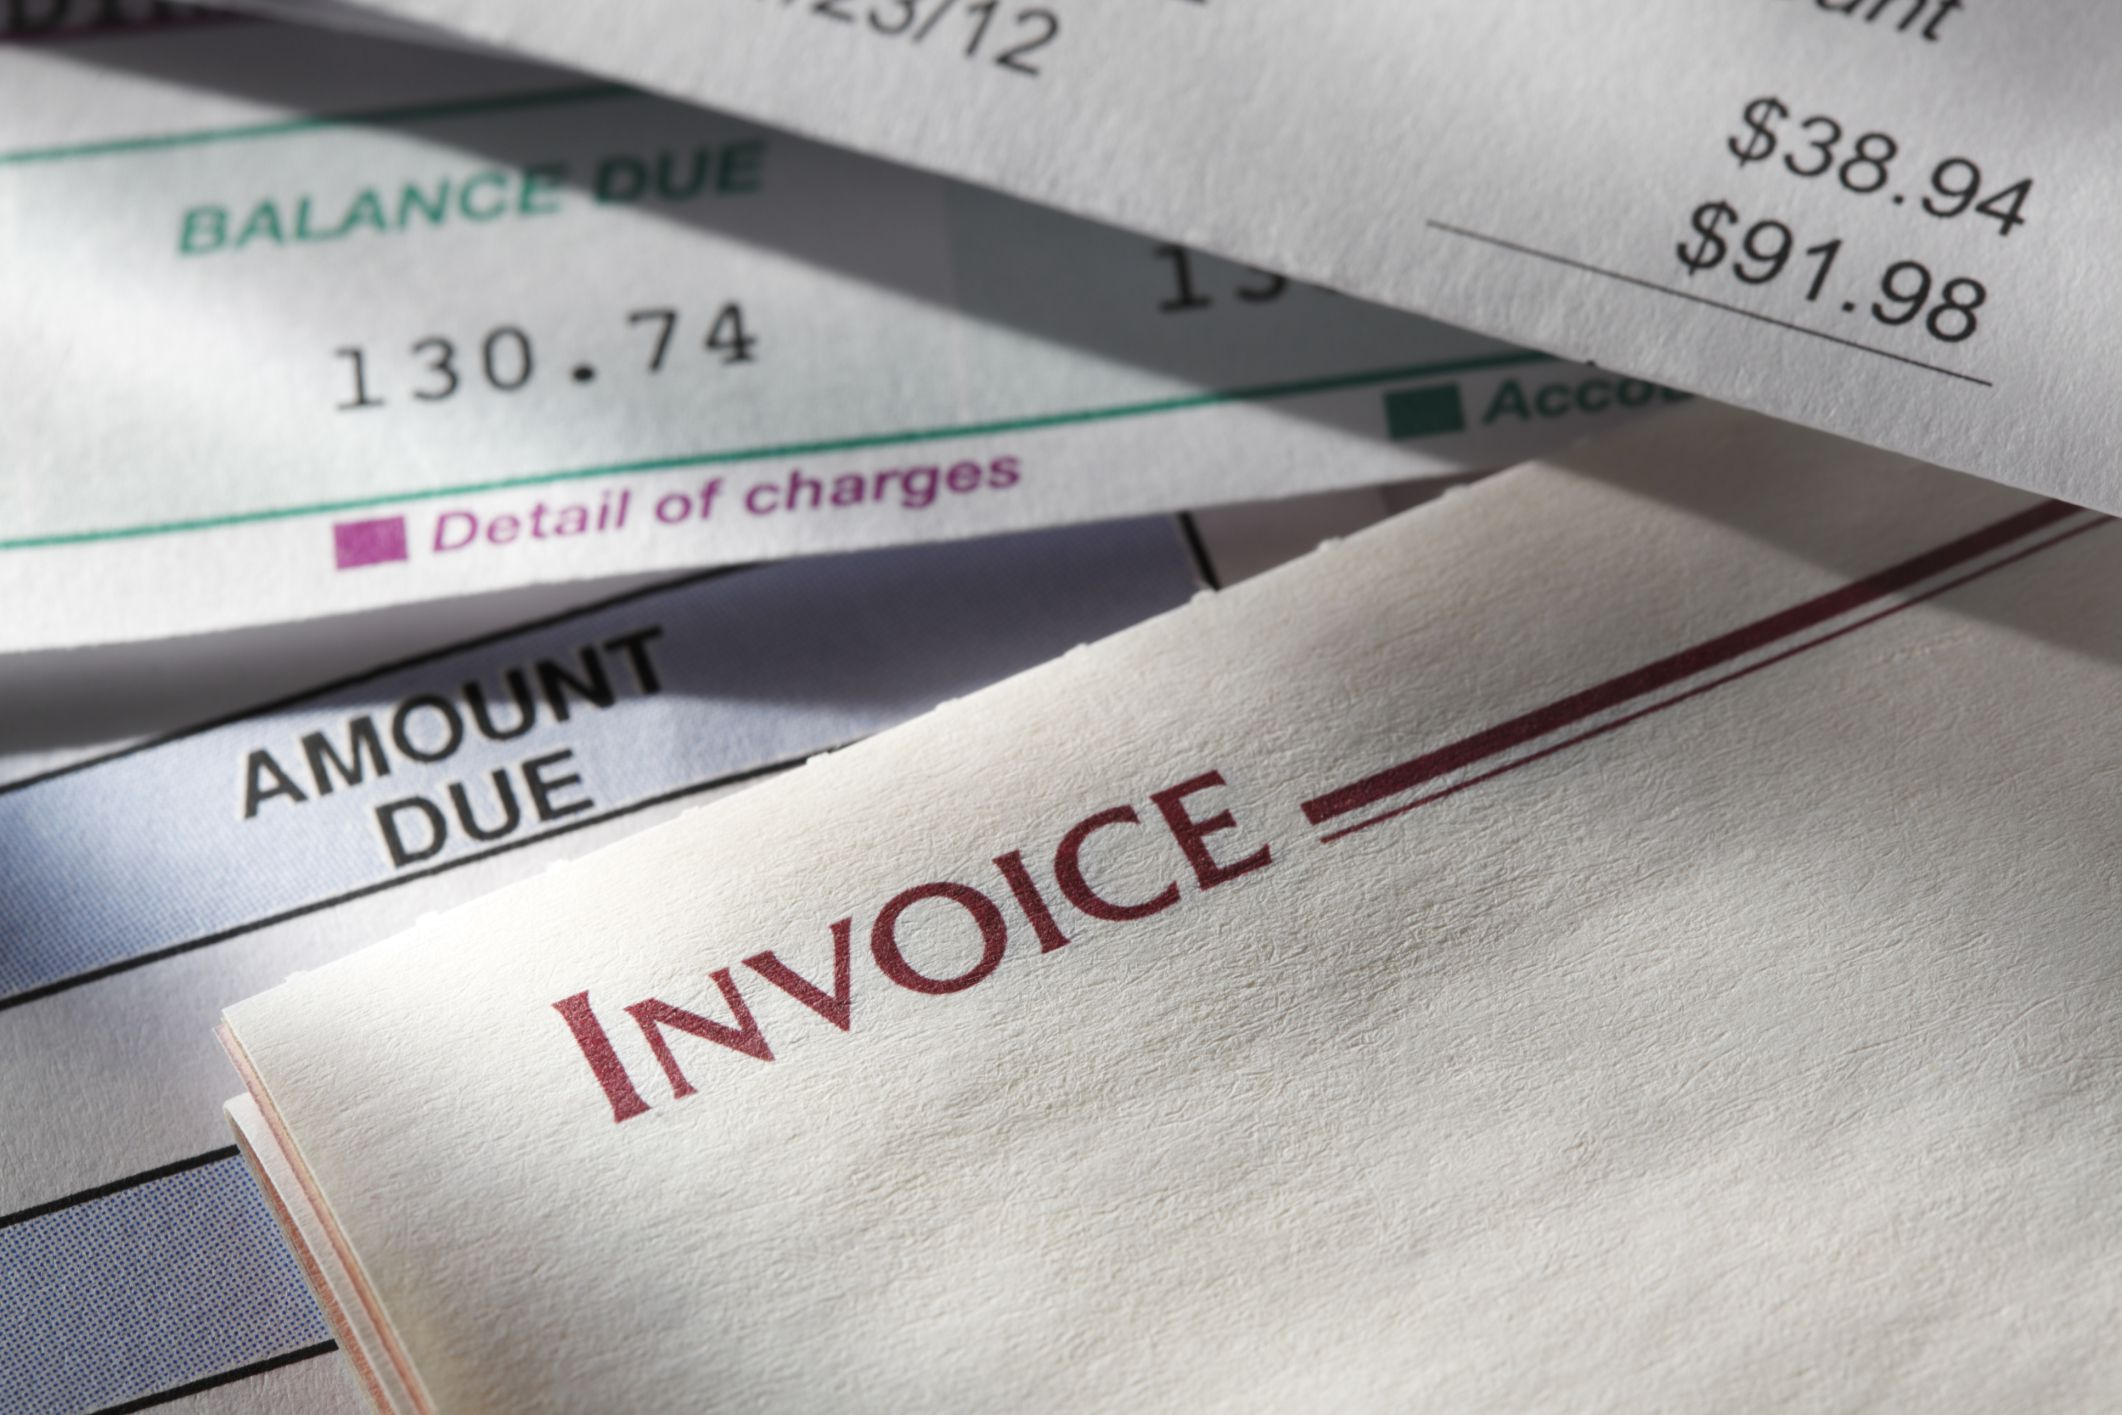 Expenses Receipt Excel What Is An Invoice And What Does It Include Invoicing System Excel Word with How To Get Invoice Price  Paid In Full Receipt